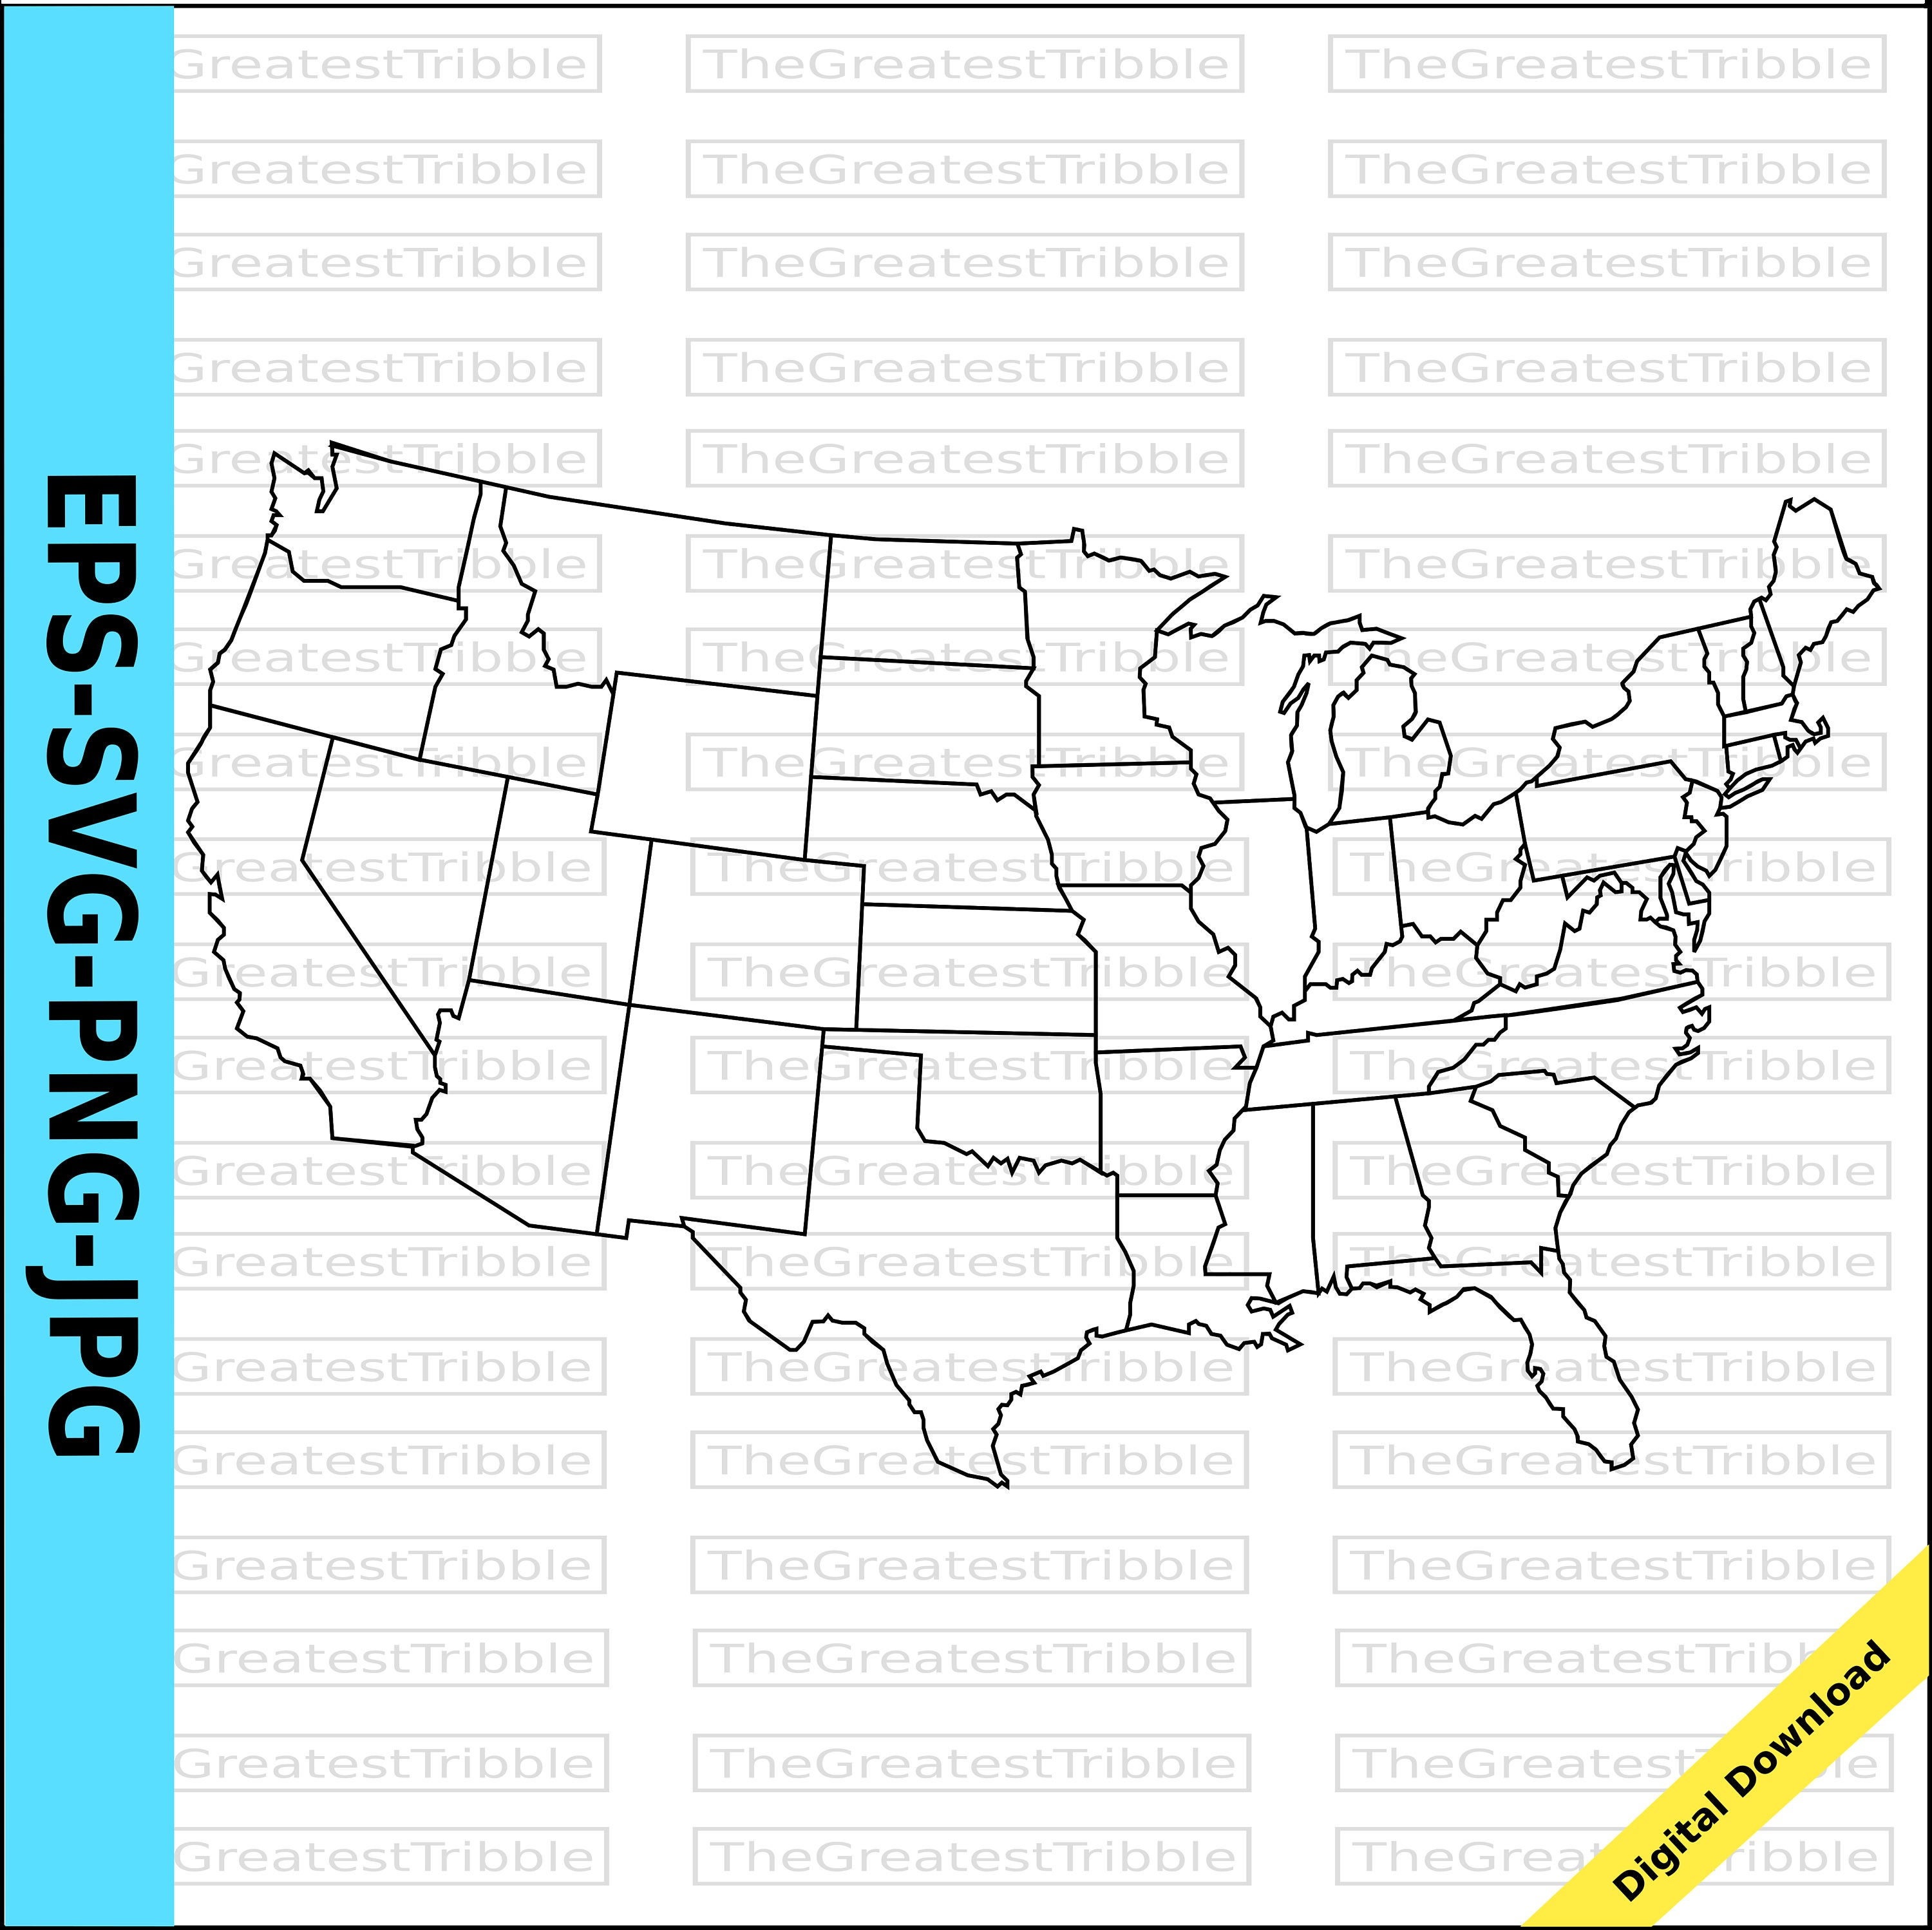 US Map United States Map State Outlines Transparent Background - Us map transparent background